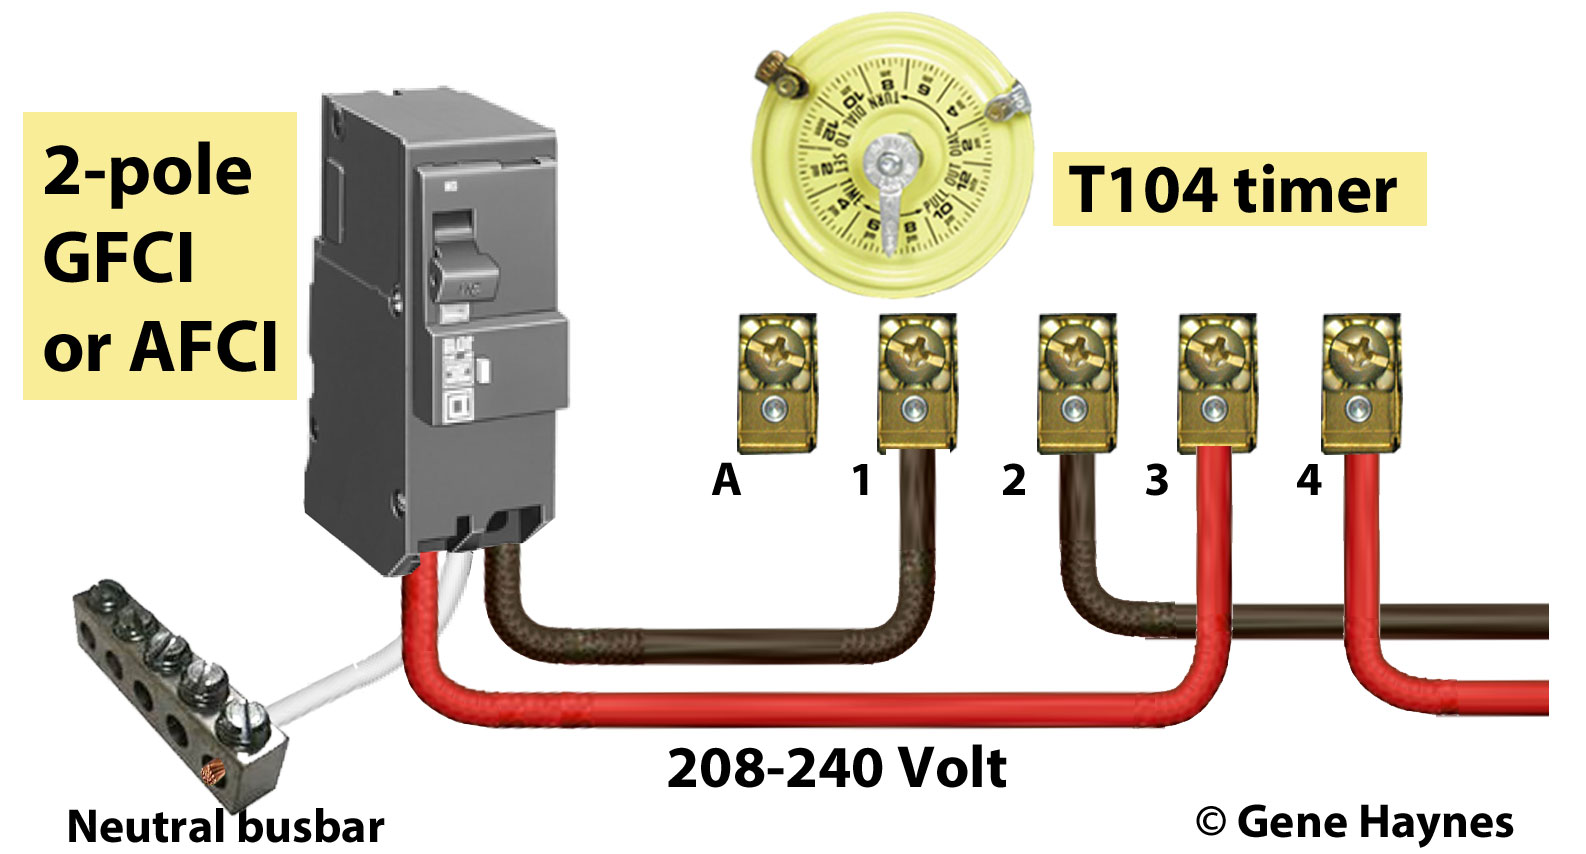 GFCI 2 pole breaker 800 how to install and troubleshoot gfci 240 volt gfci breaker diagram at bakdesigns.co